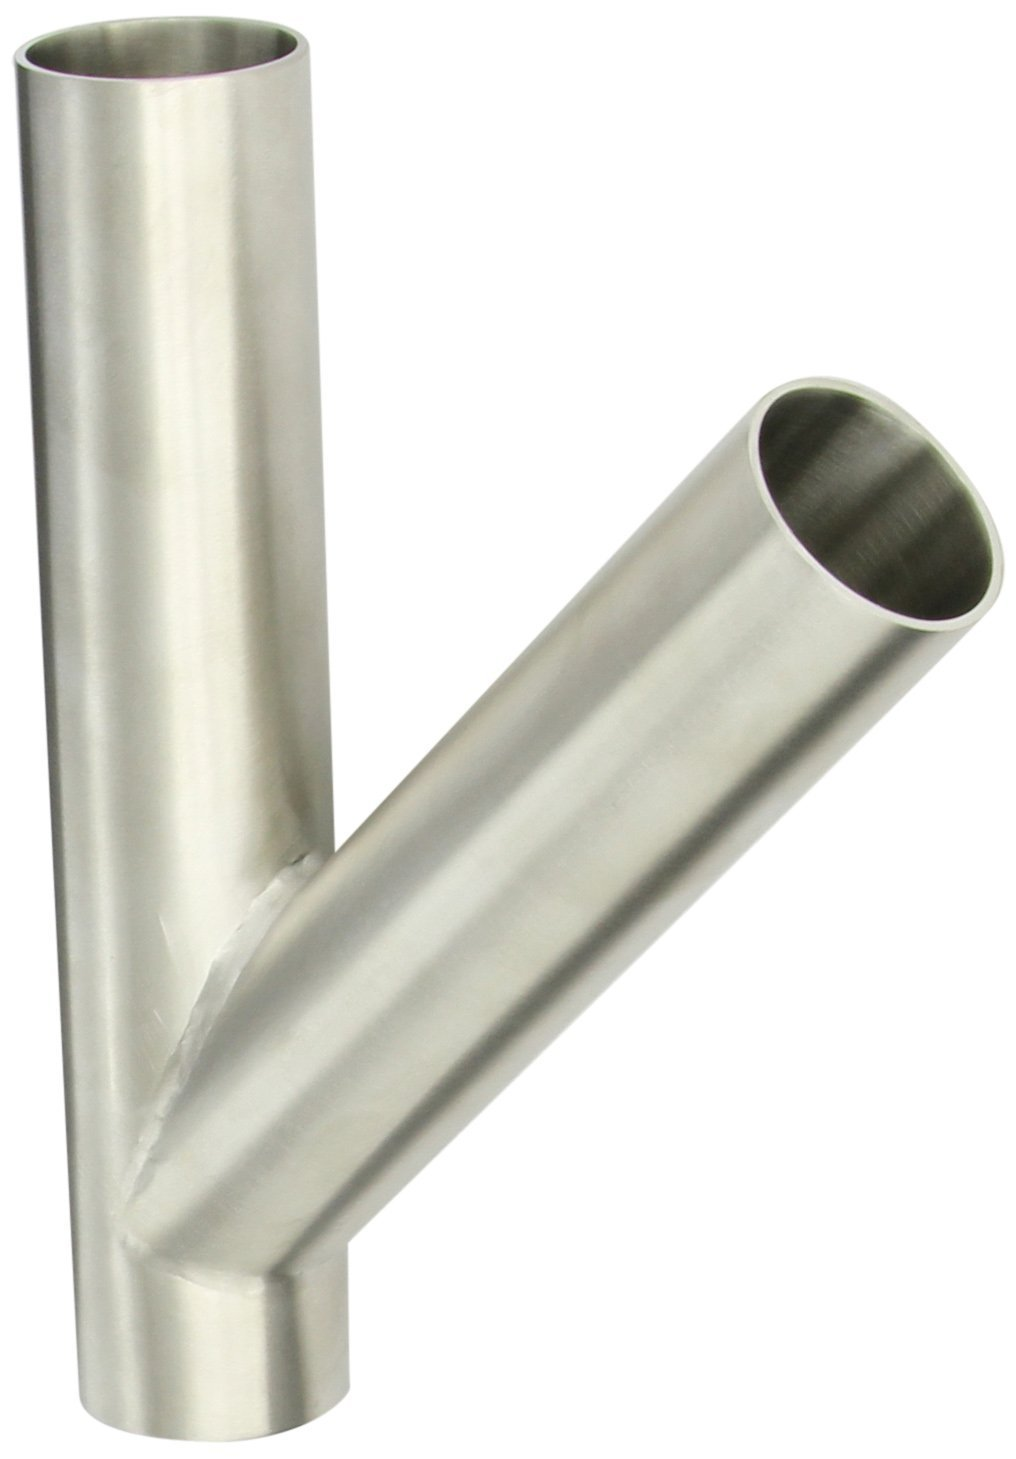 Dixon B28WA-R150P Stainless Steel 316L Sanitary Fitting, Polished Weld Clamp Lateral, 1-1/2'' Tube OD